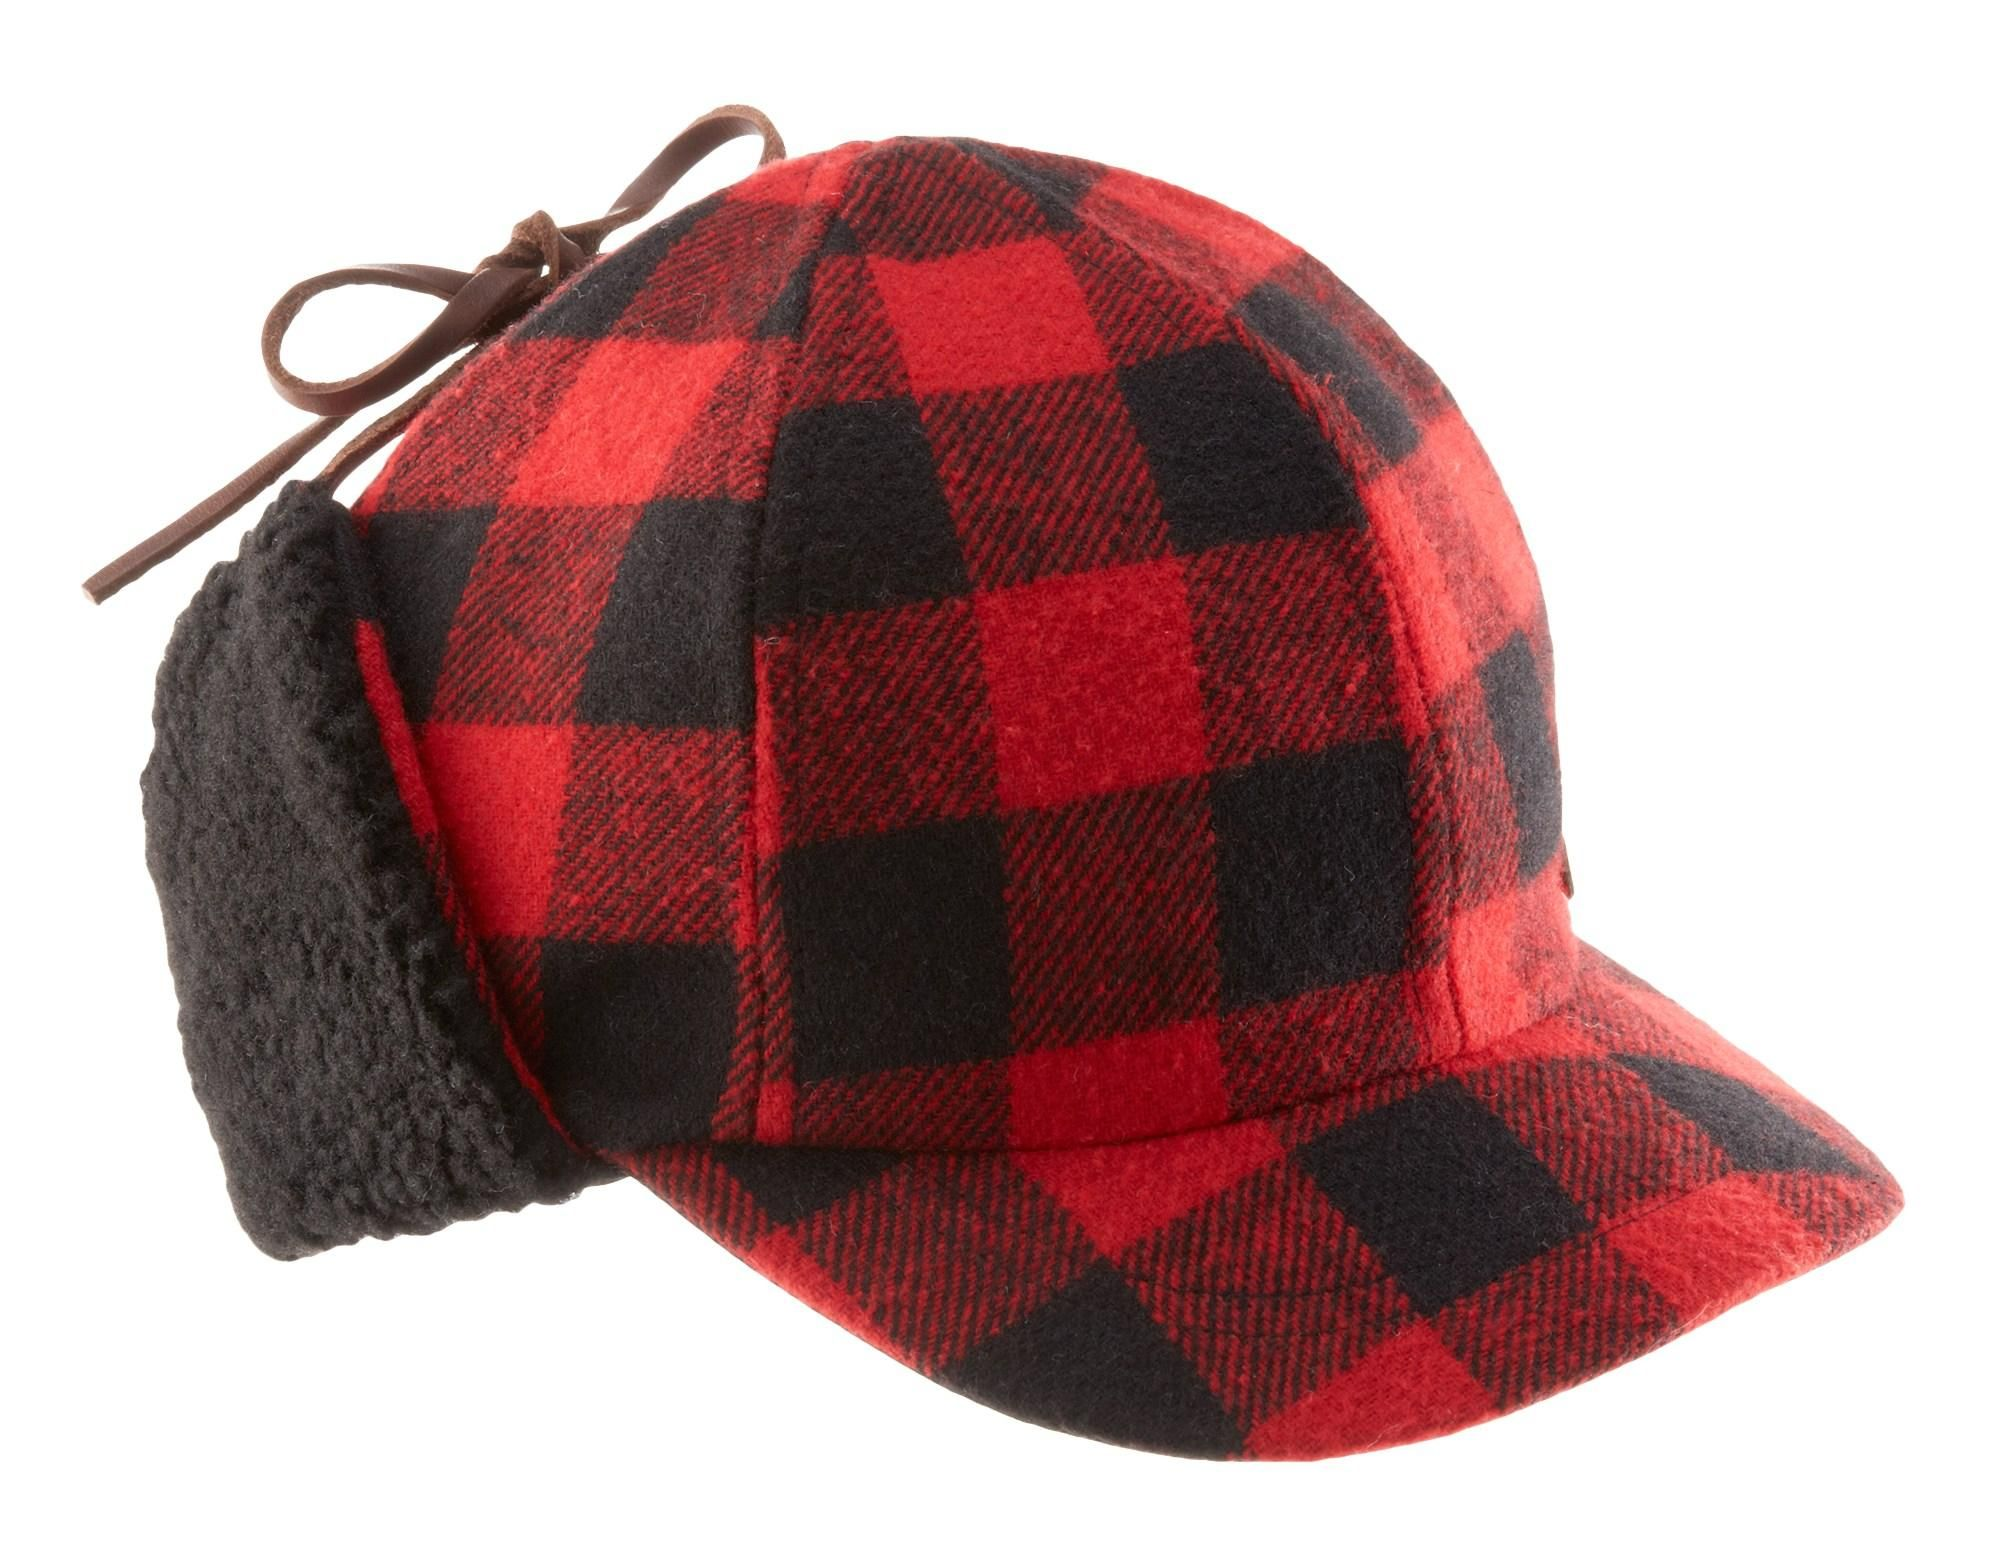 b0d7a61b The Elmer Fudd-approved REI Buffalo Plaid cap is lined with soft polyester  fleece and features warm insulation. #REIGifts